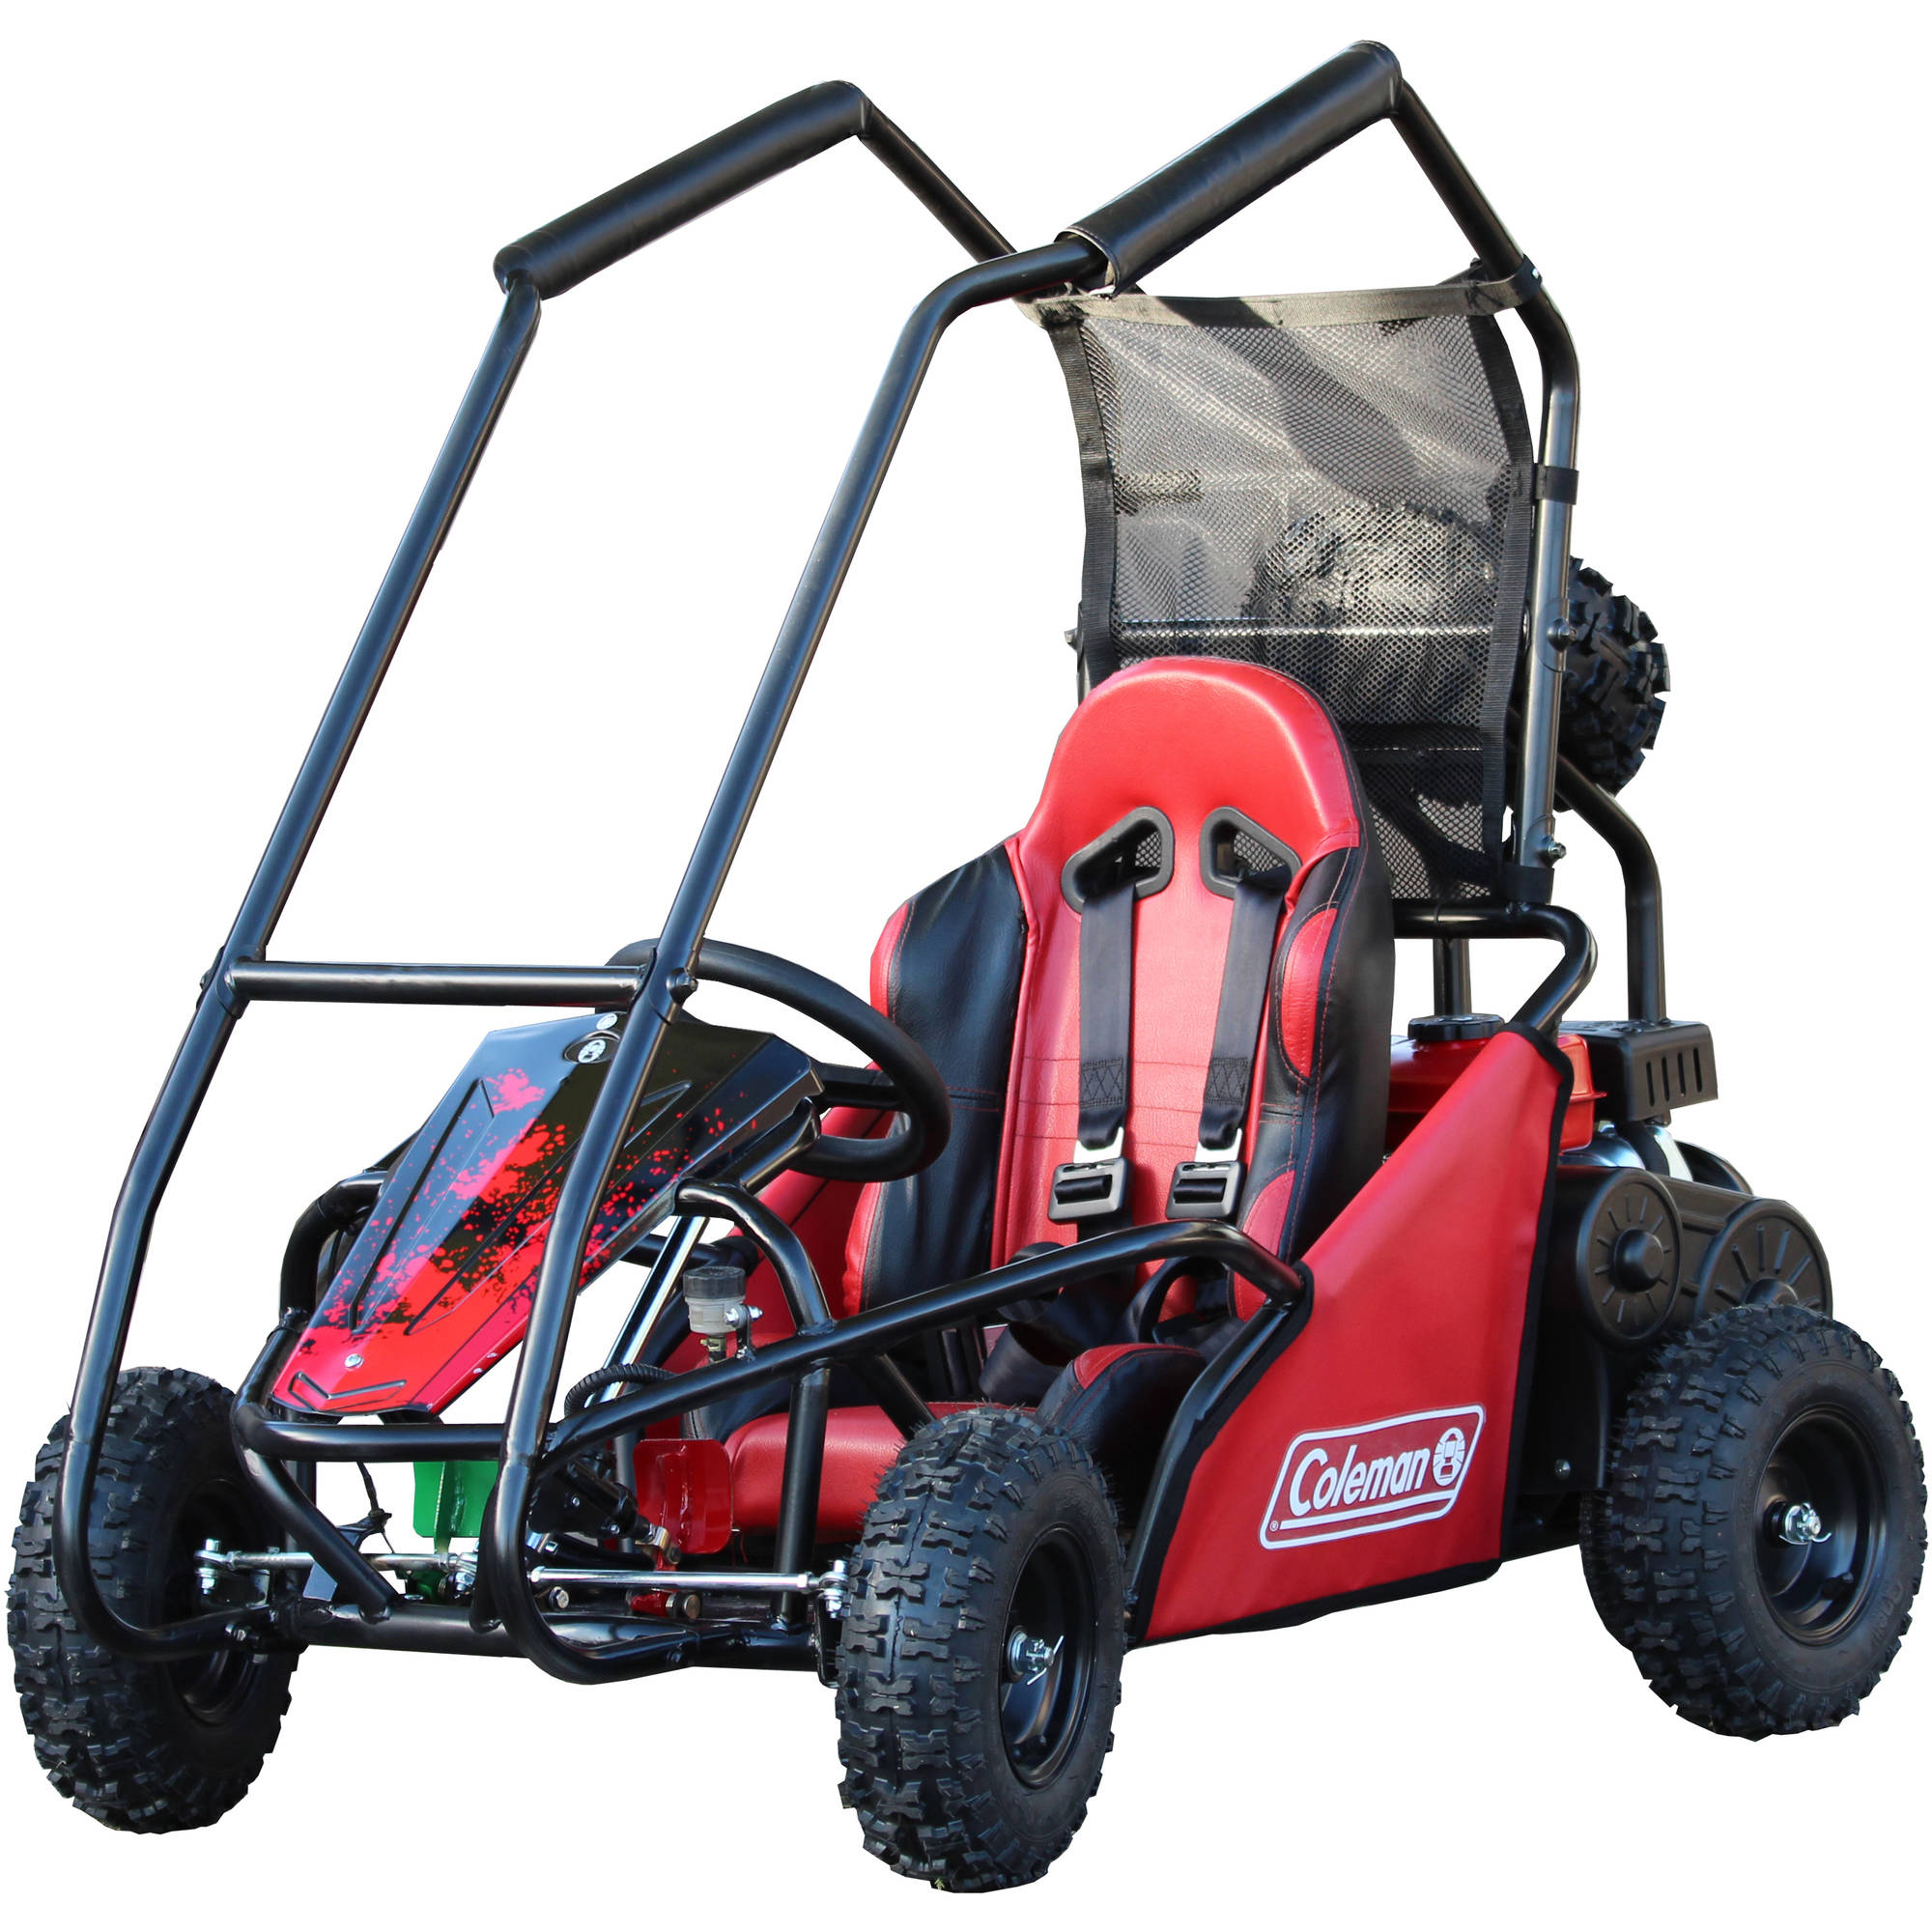 Coleman Off Road 100cc Go-Kart